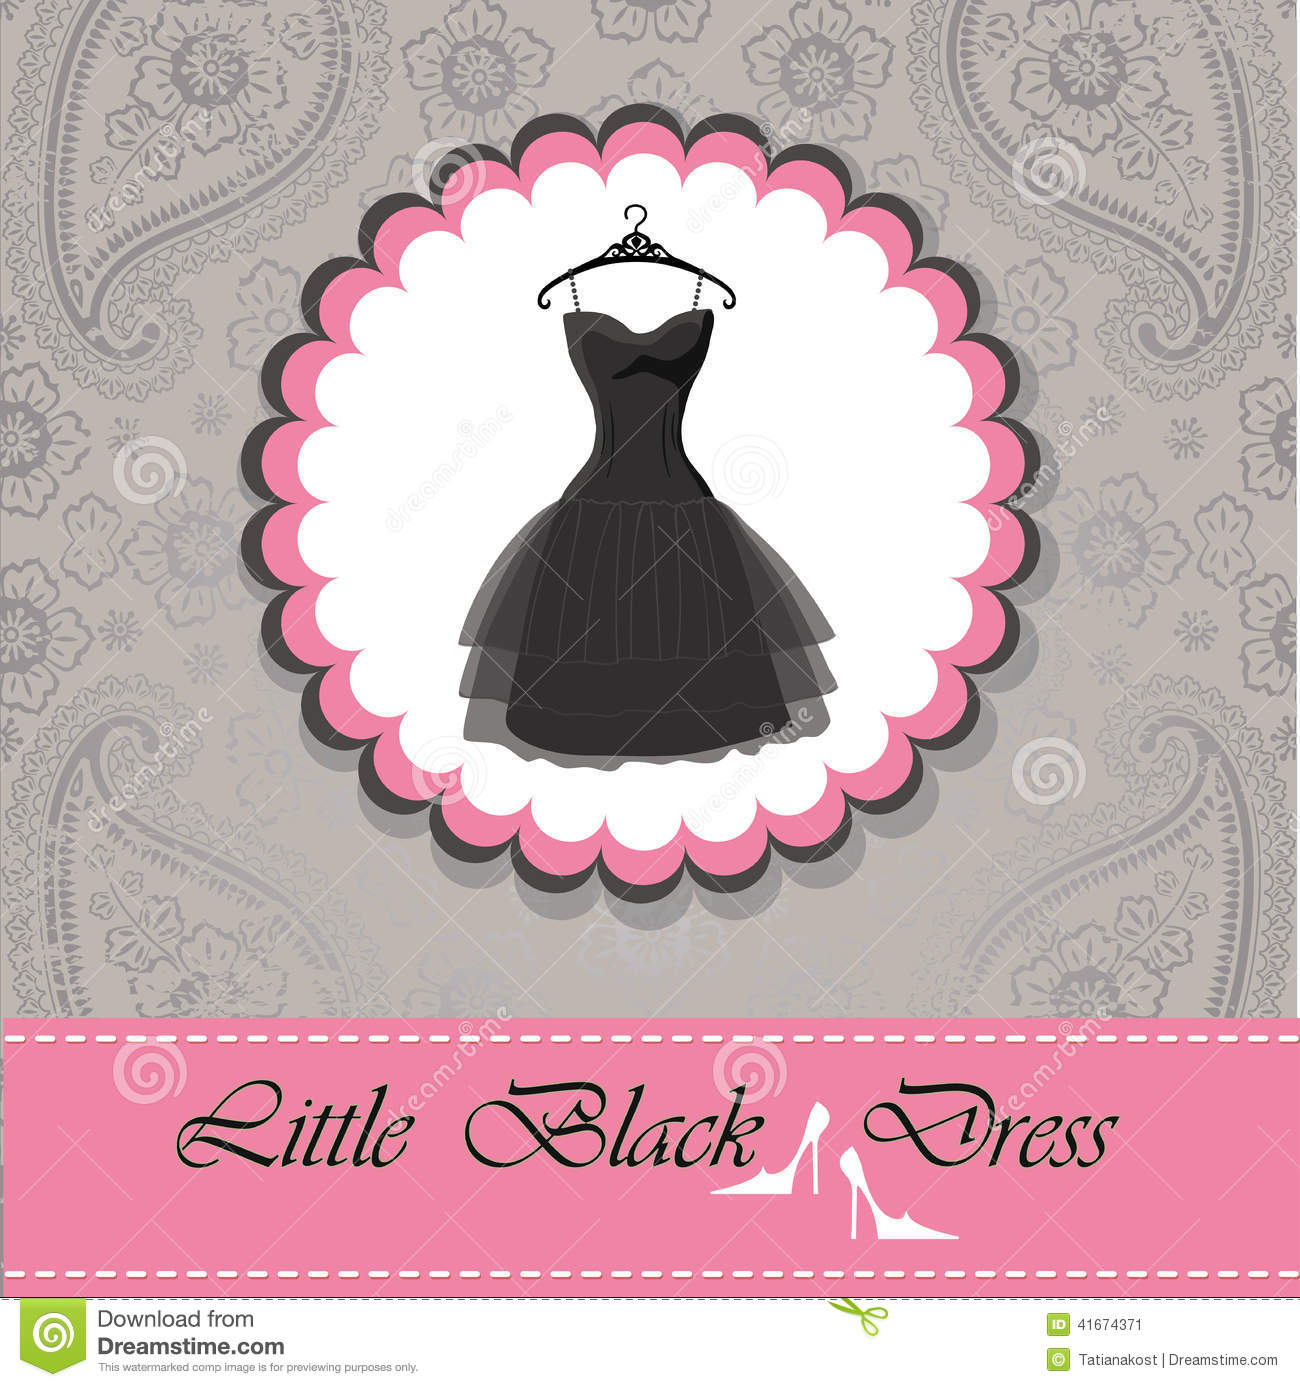 Cute Wallpapers Drawing Label With Little Black Dress Paisley Lace Background